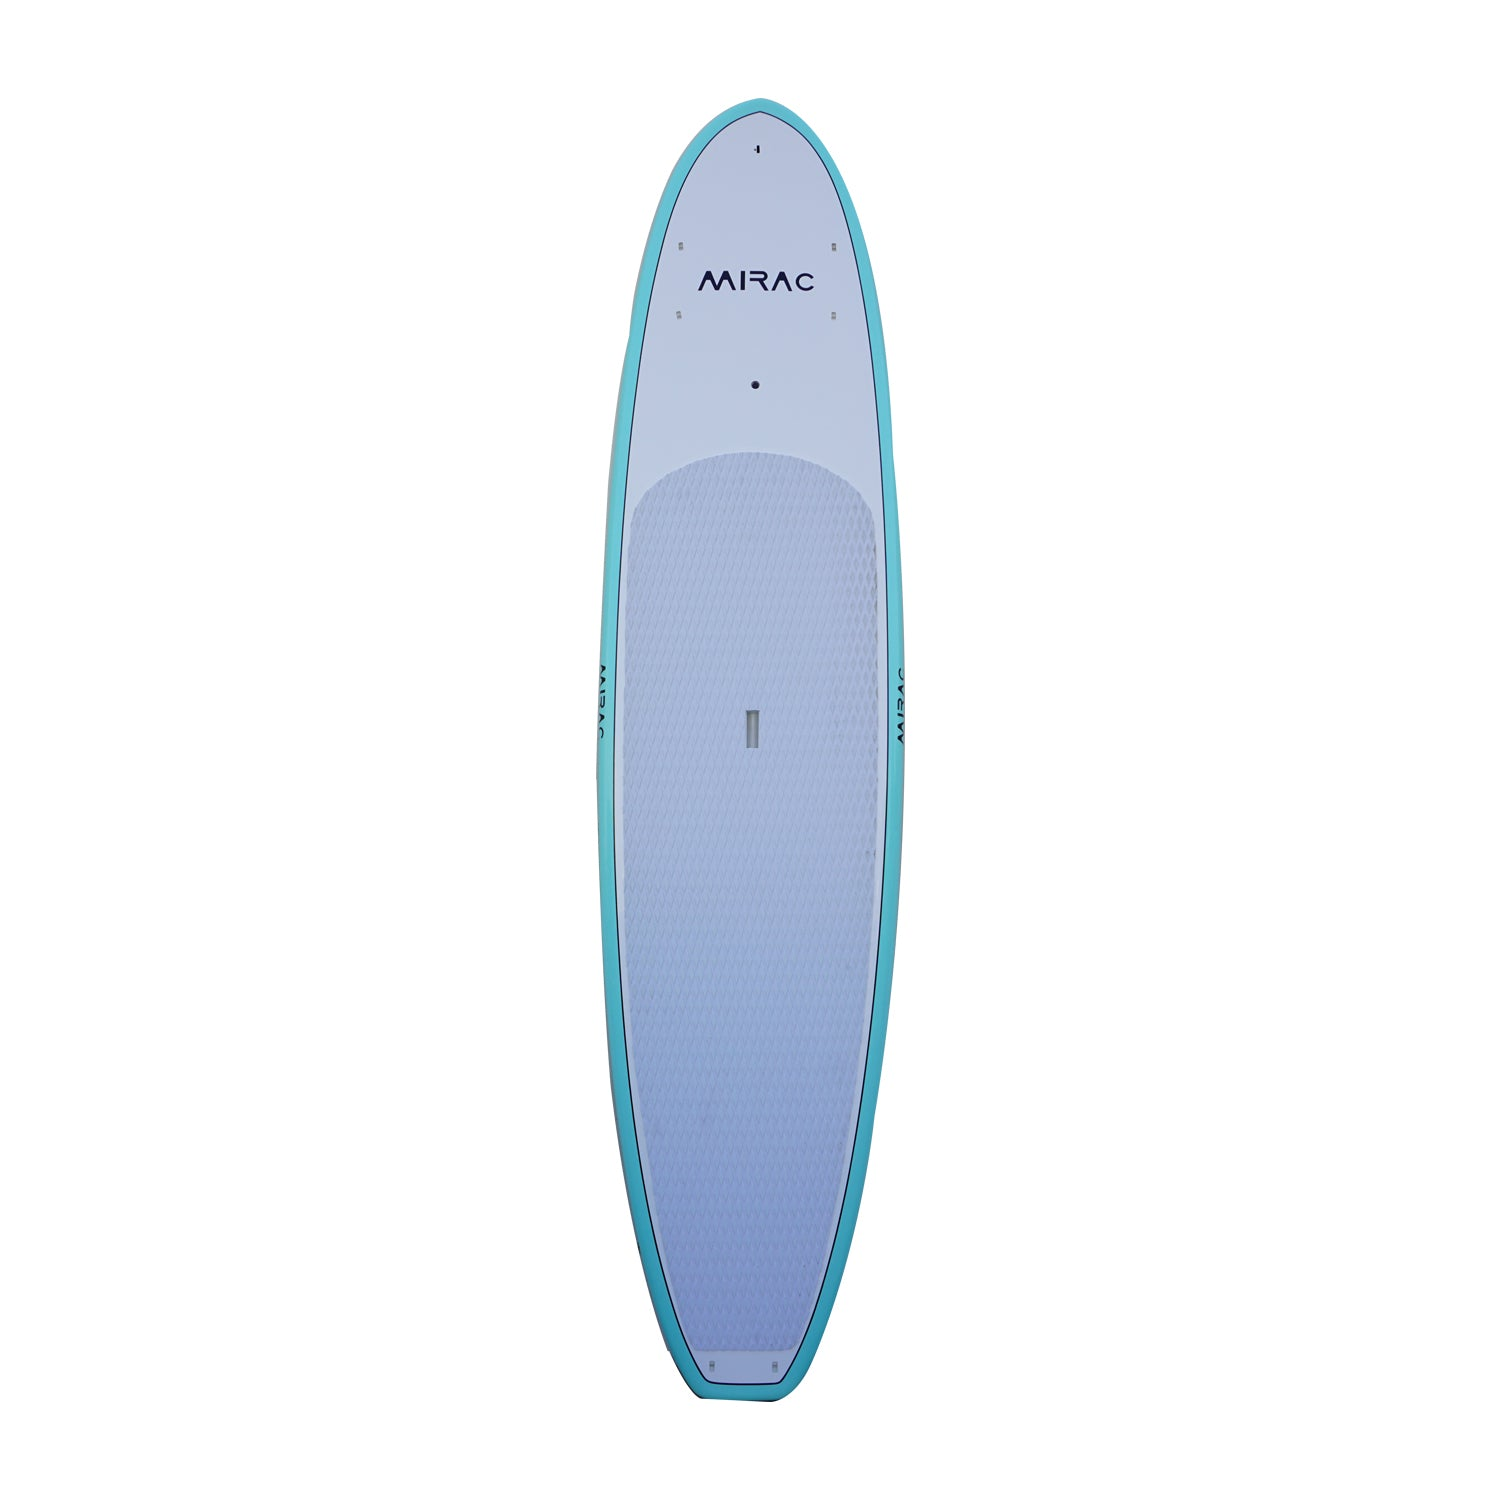 MIRAC - STAND UP PADDLE BOARD - SUP BOARD - OBM Distribution, Inc.